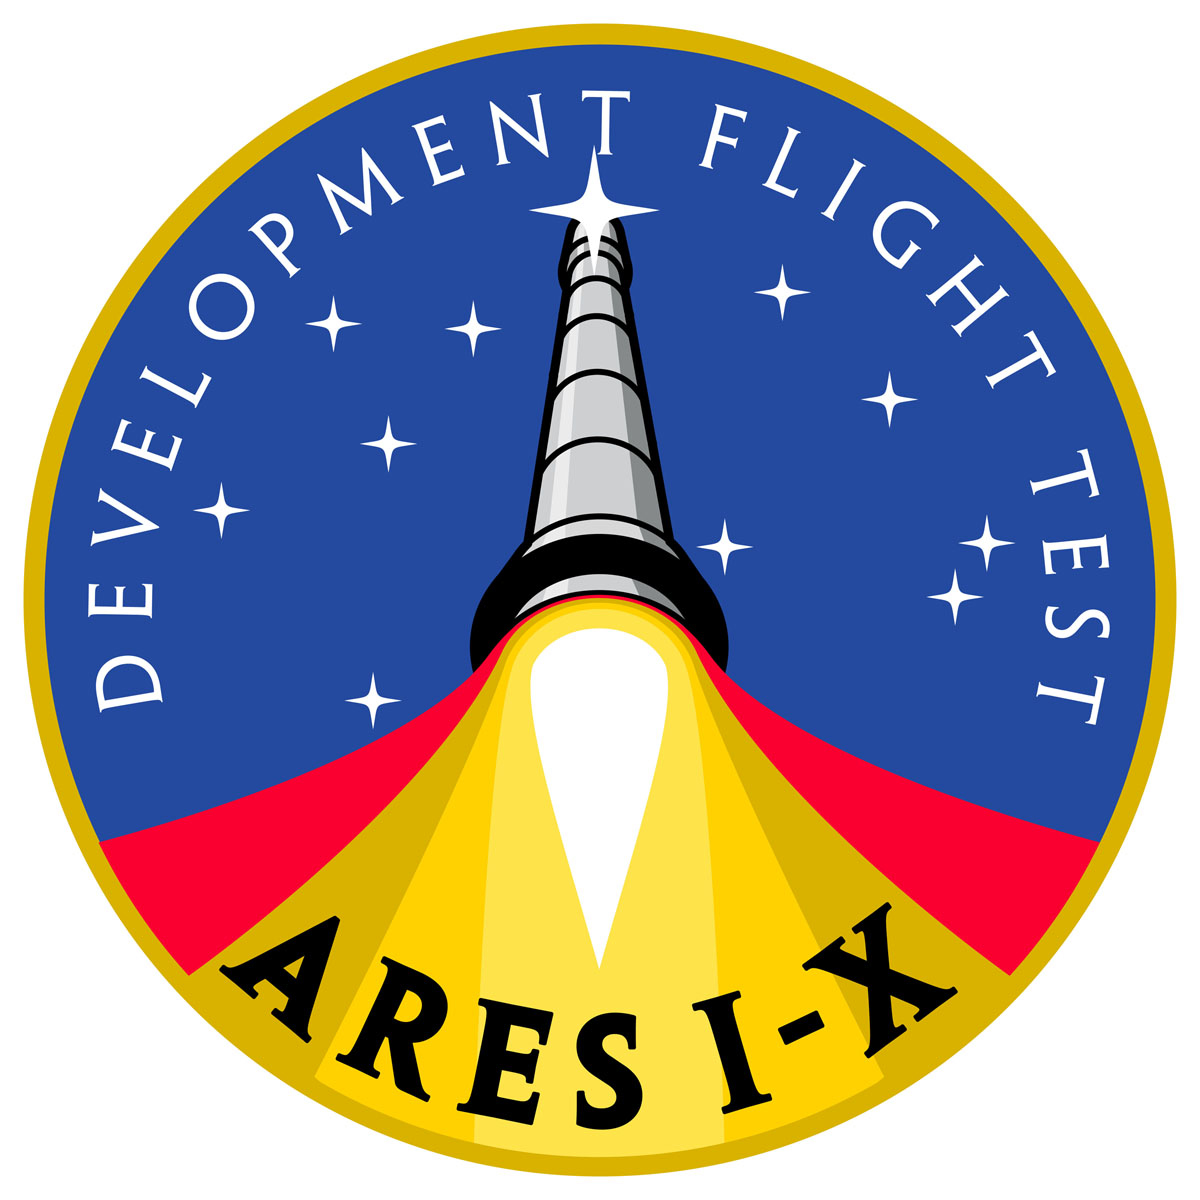 nasa rocket division logo - photo #16